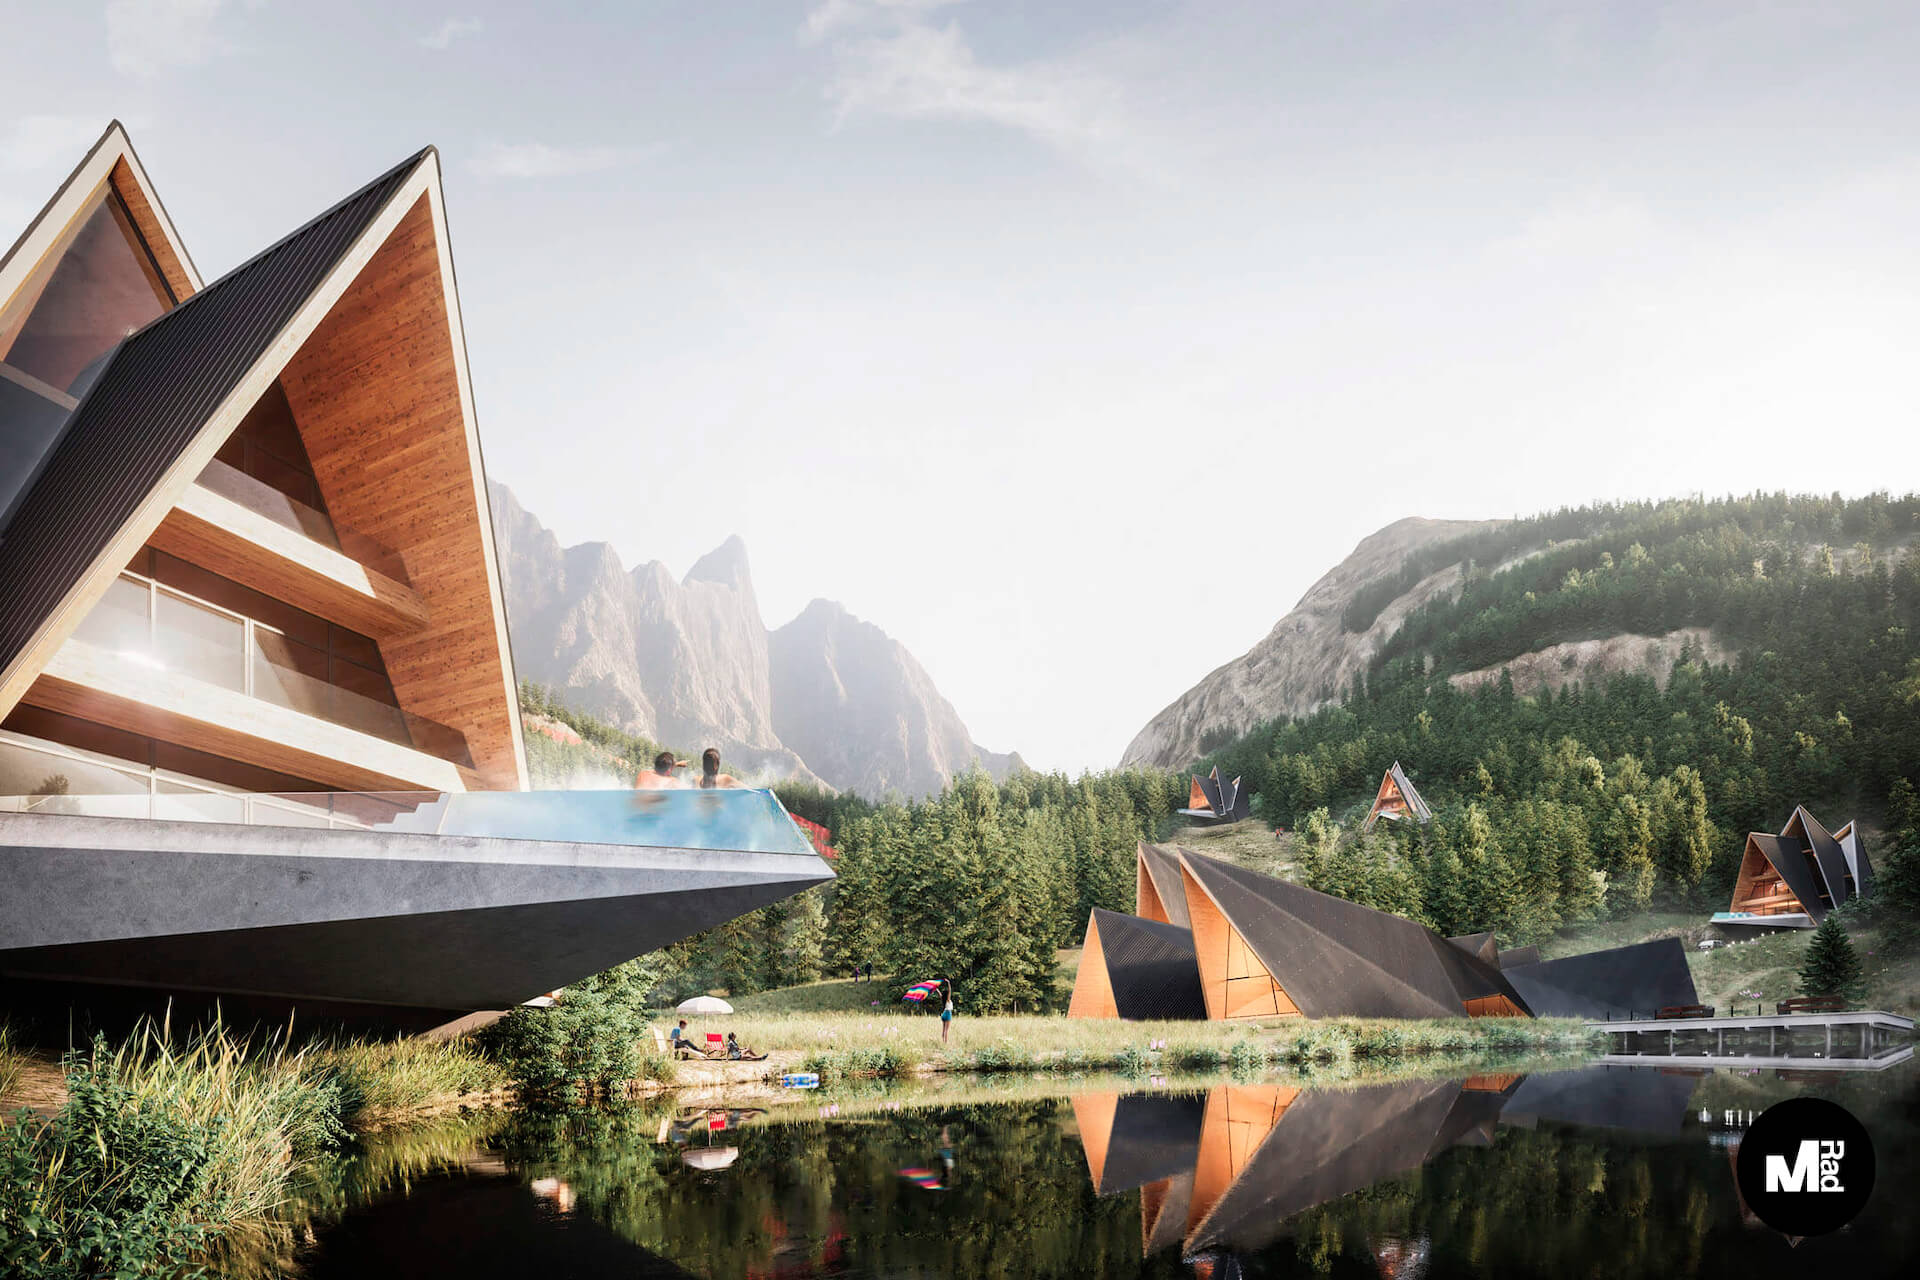 3D Visualization of a Resort Complex In Summer Setting